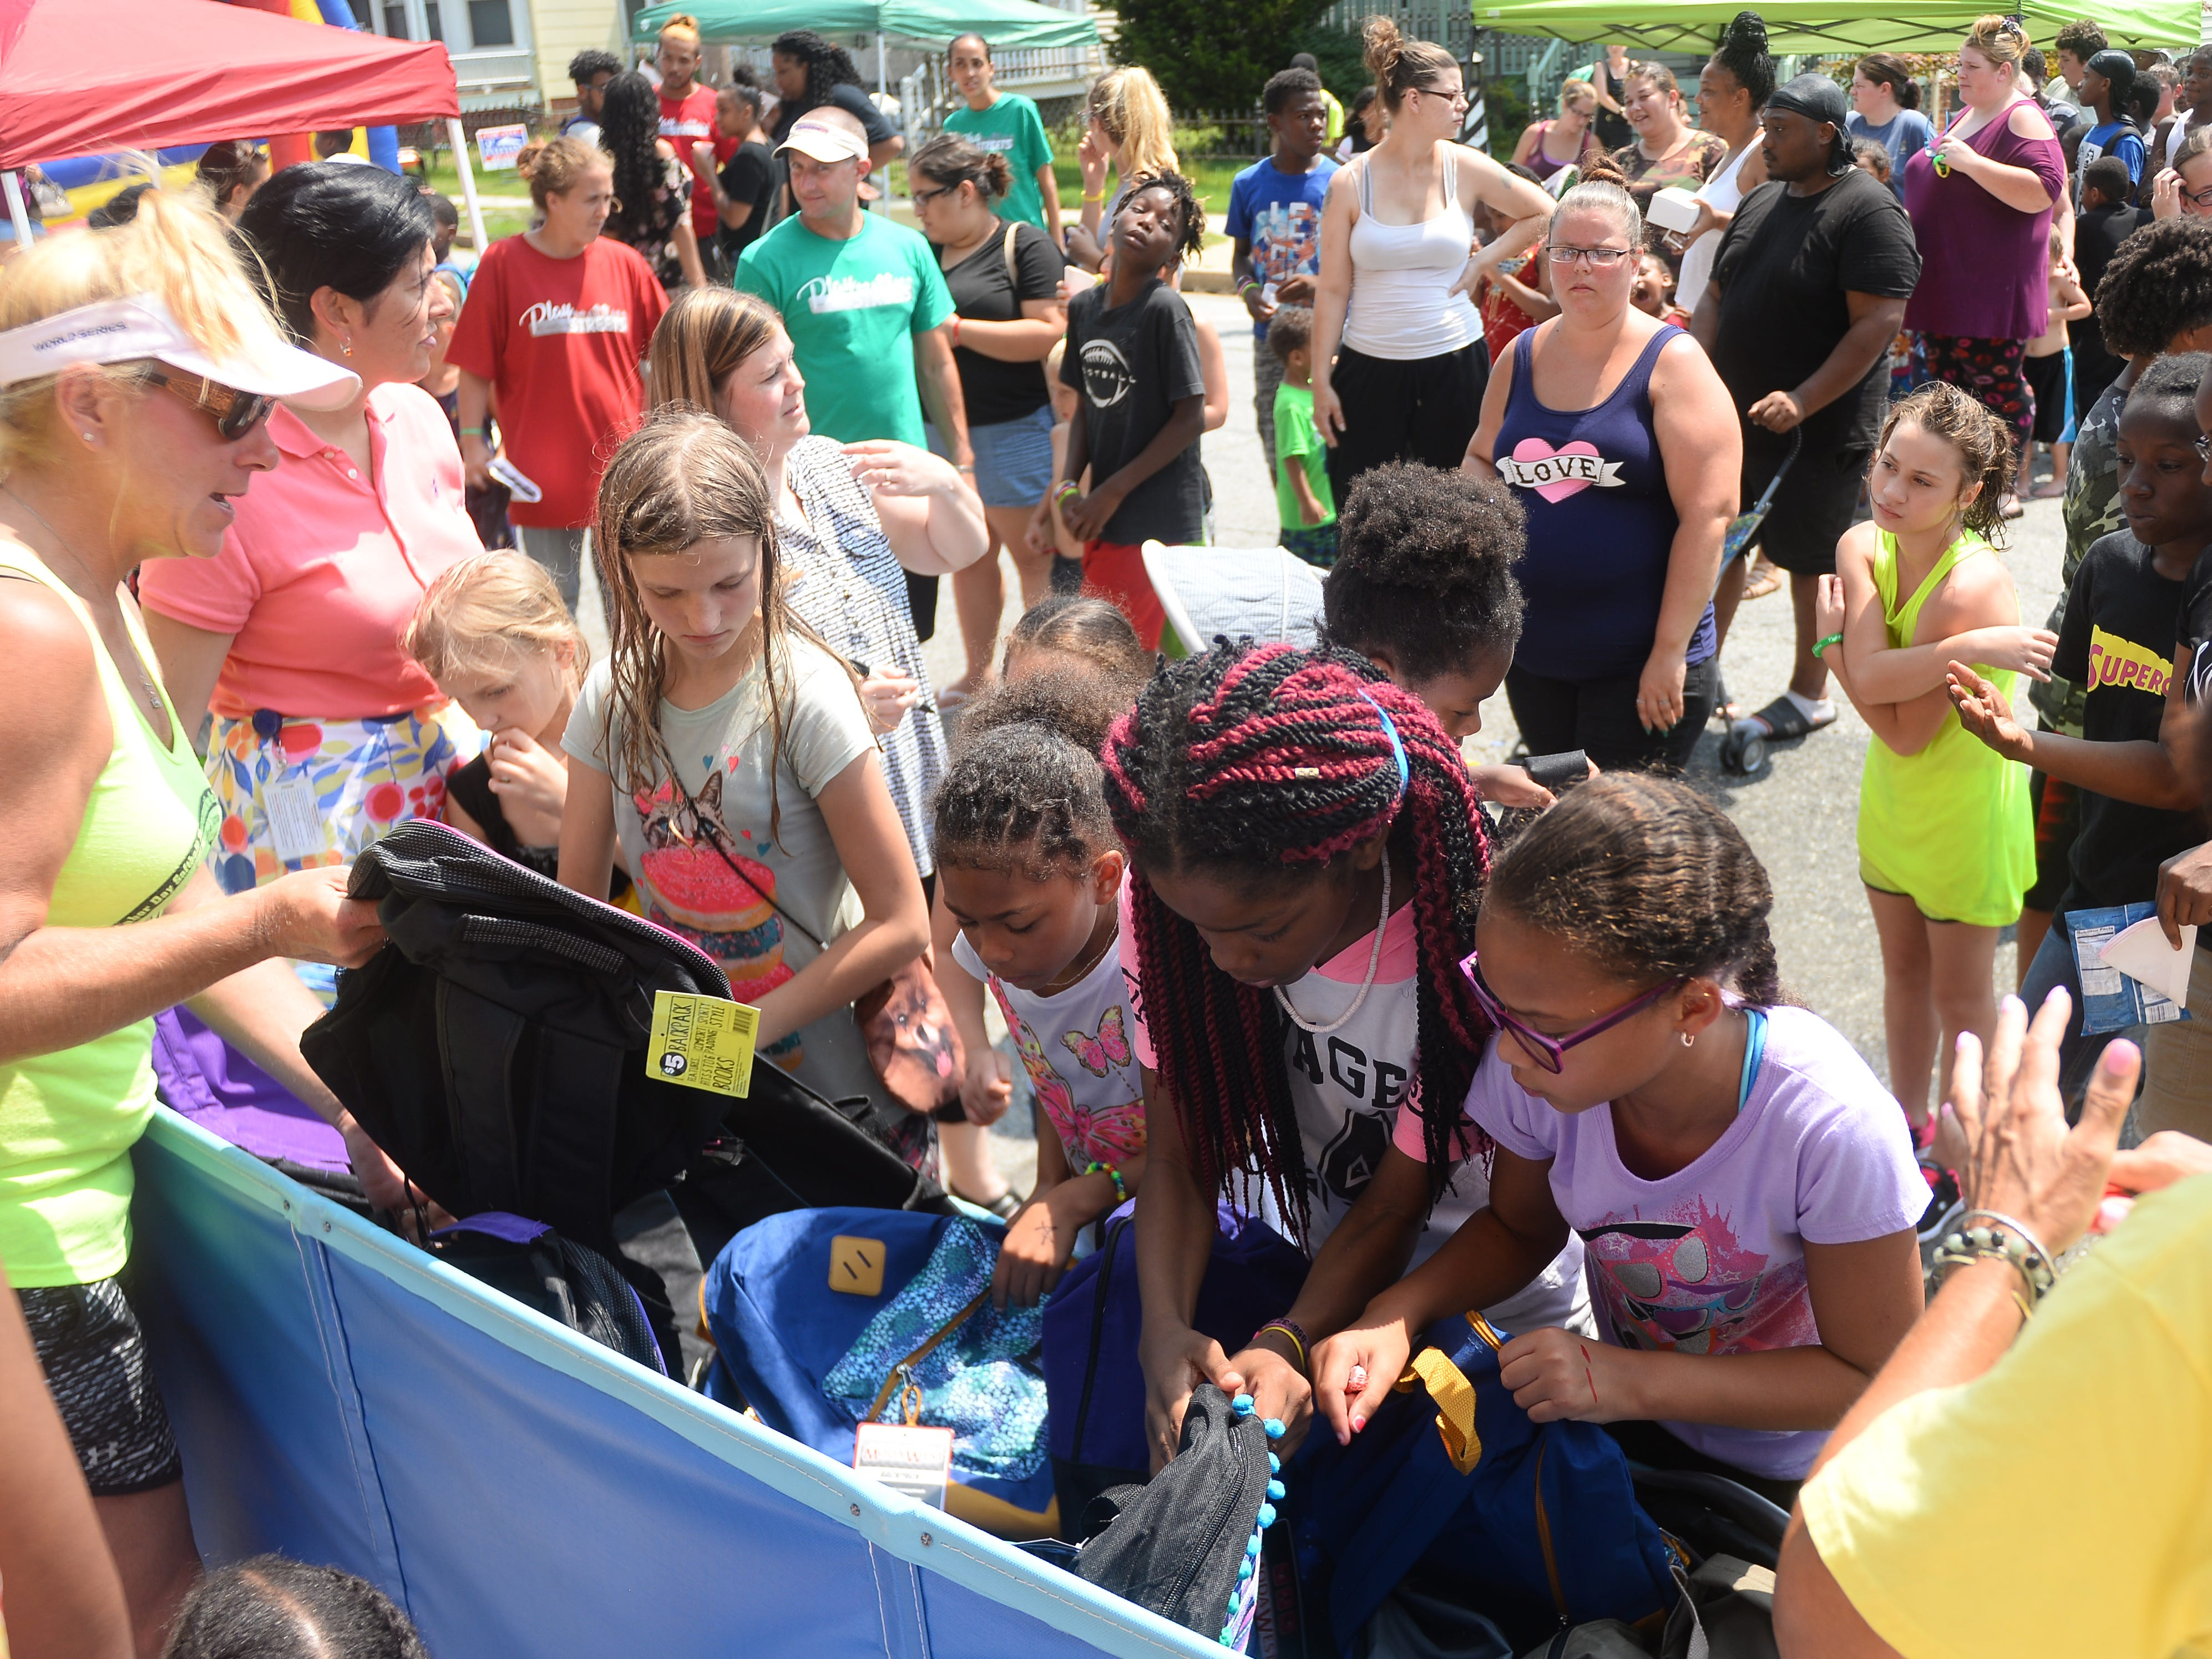 Children line up to pick out a free backpack at Millville's Play Streets event on Wednesday, August 15.